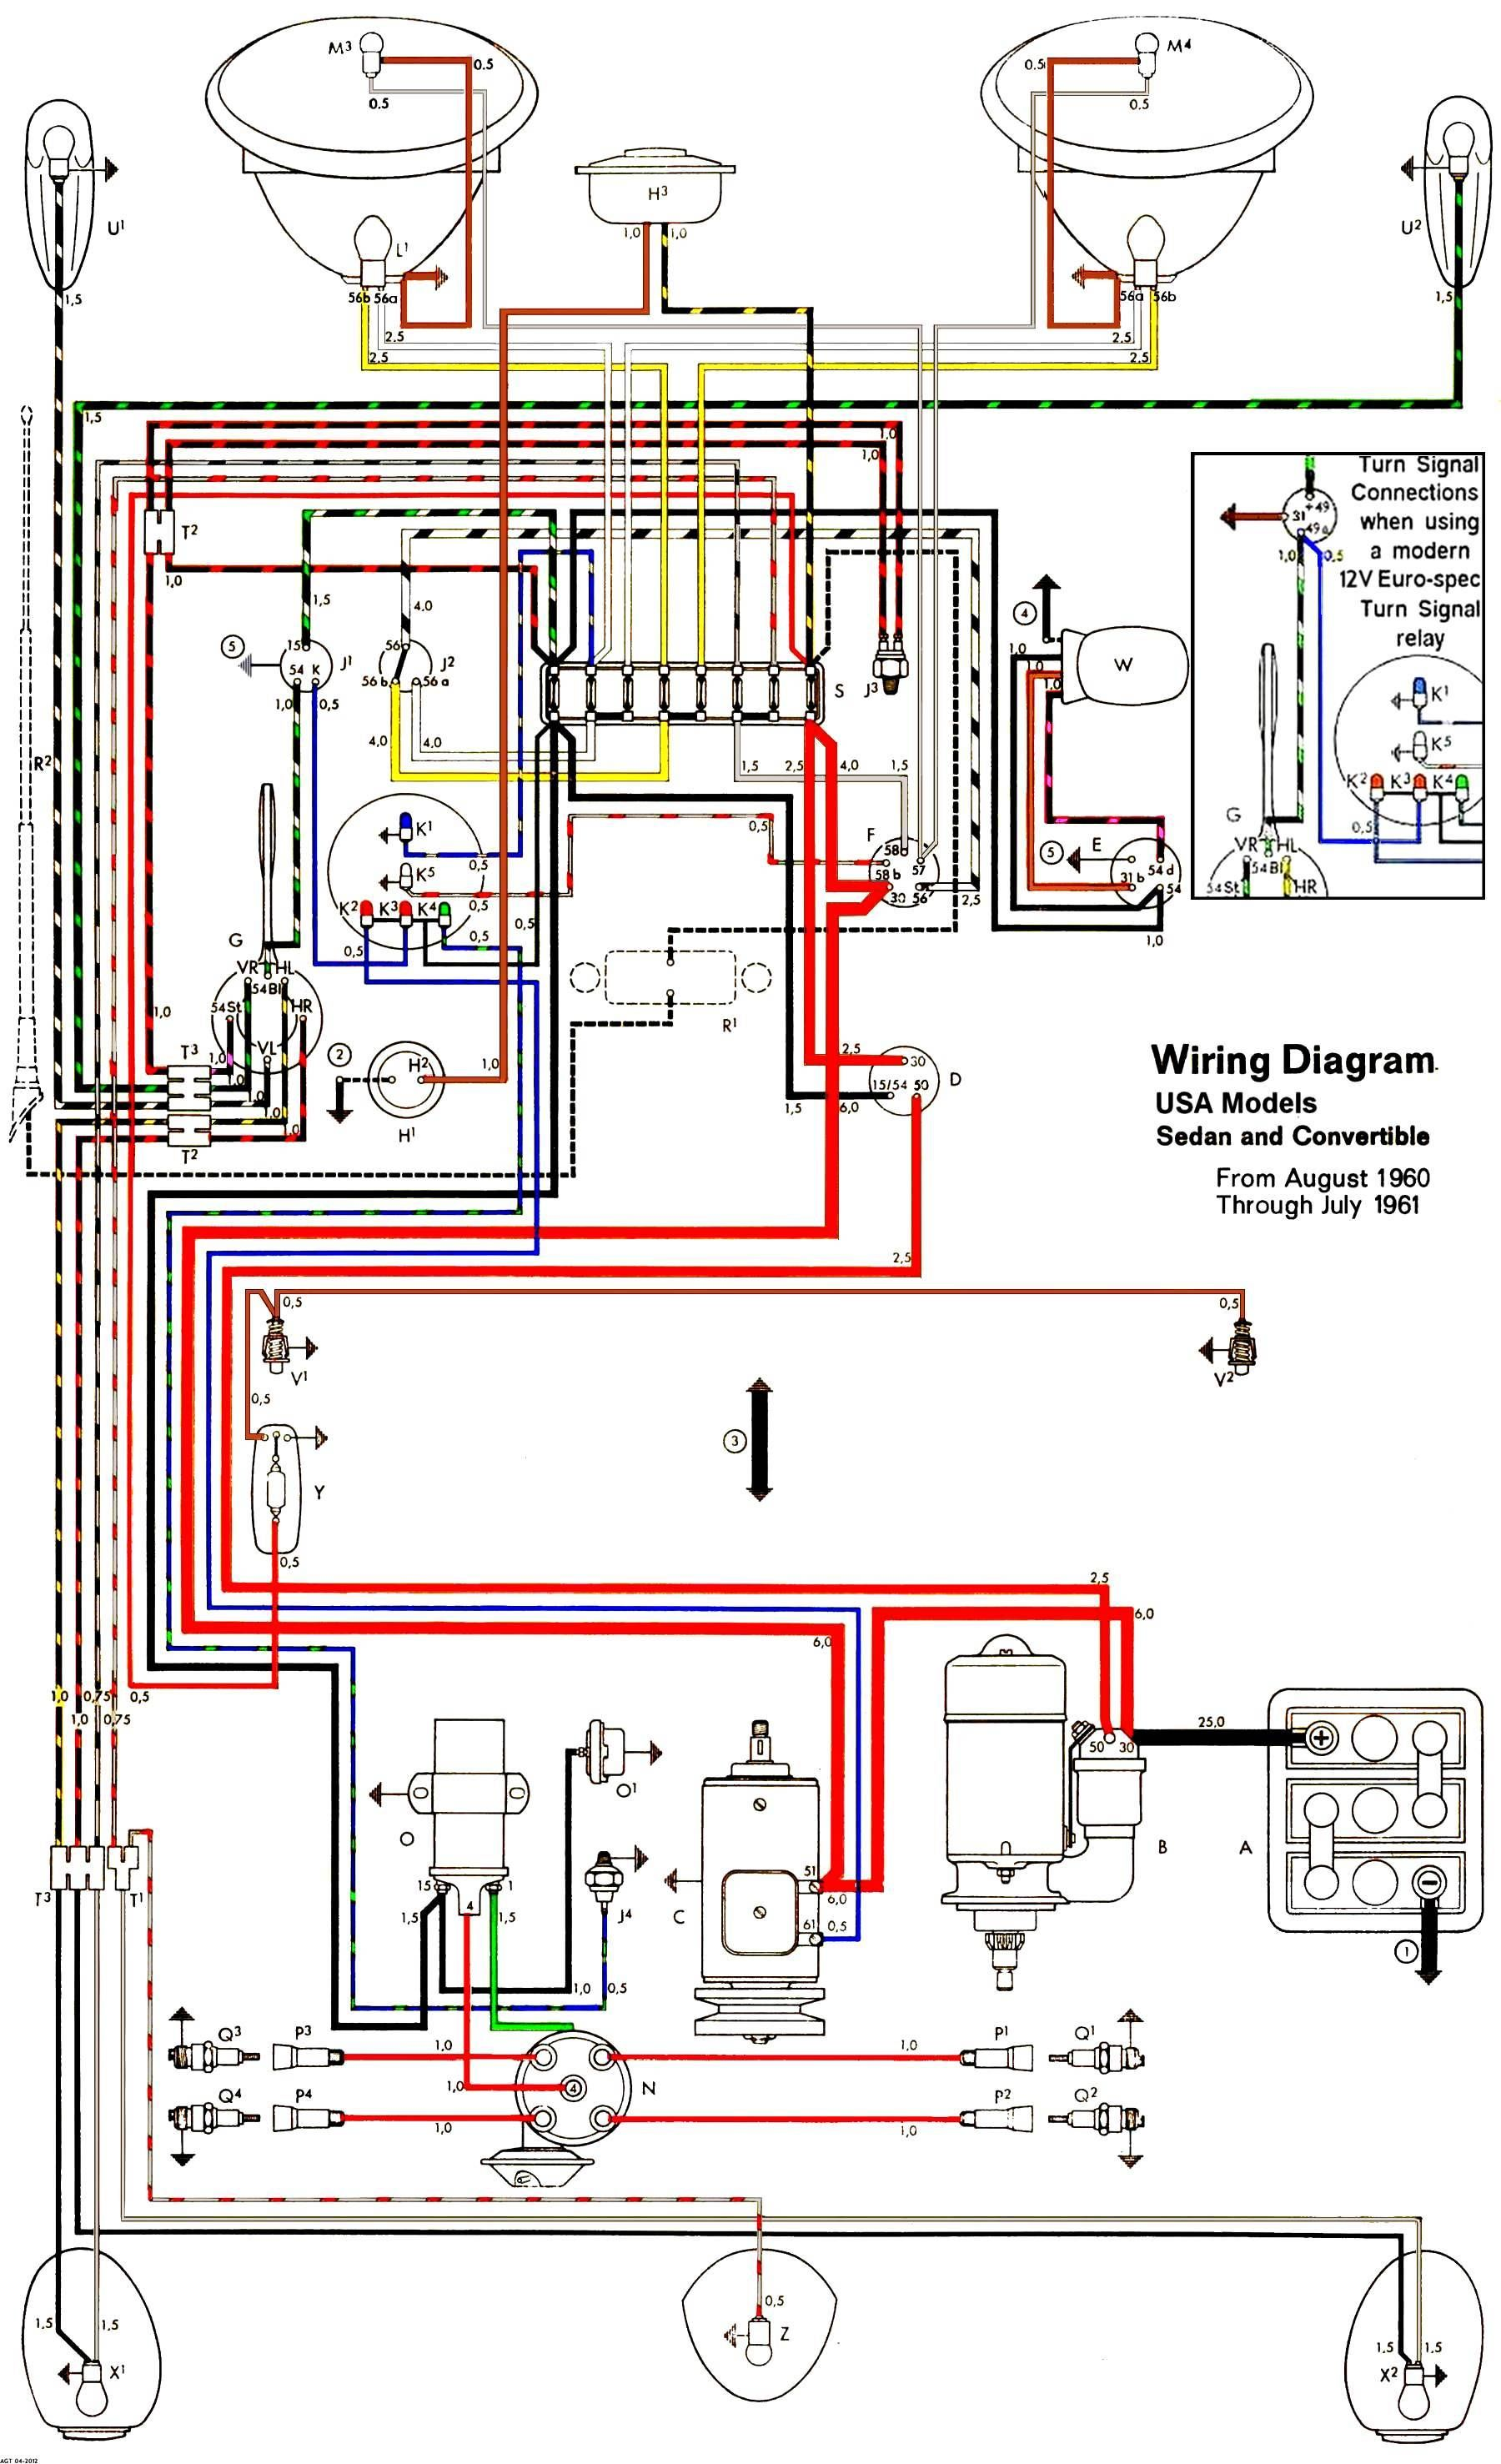 Beetle Fuse Diagram Wiring Schematic In 2020 Vw Super Beetle Electrical Wiring Electrical Diagram